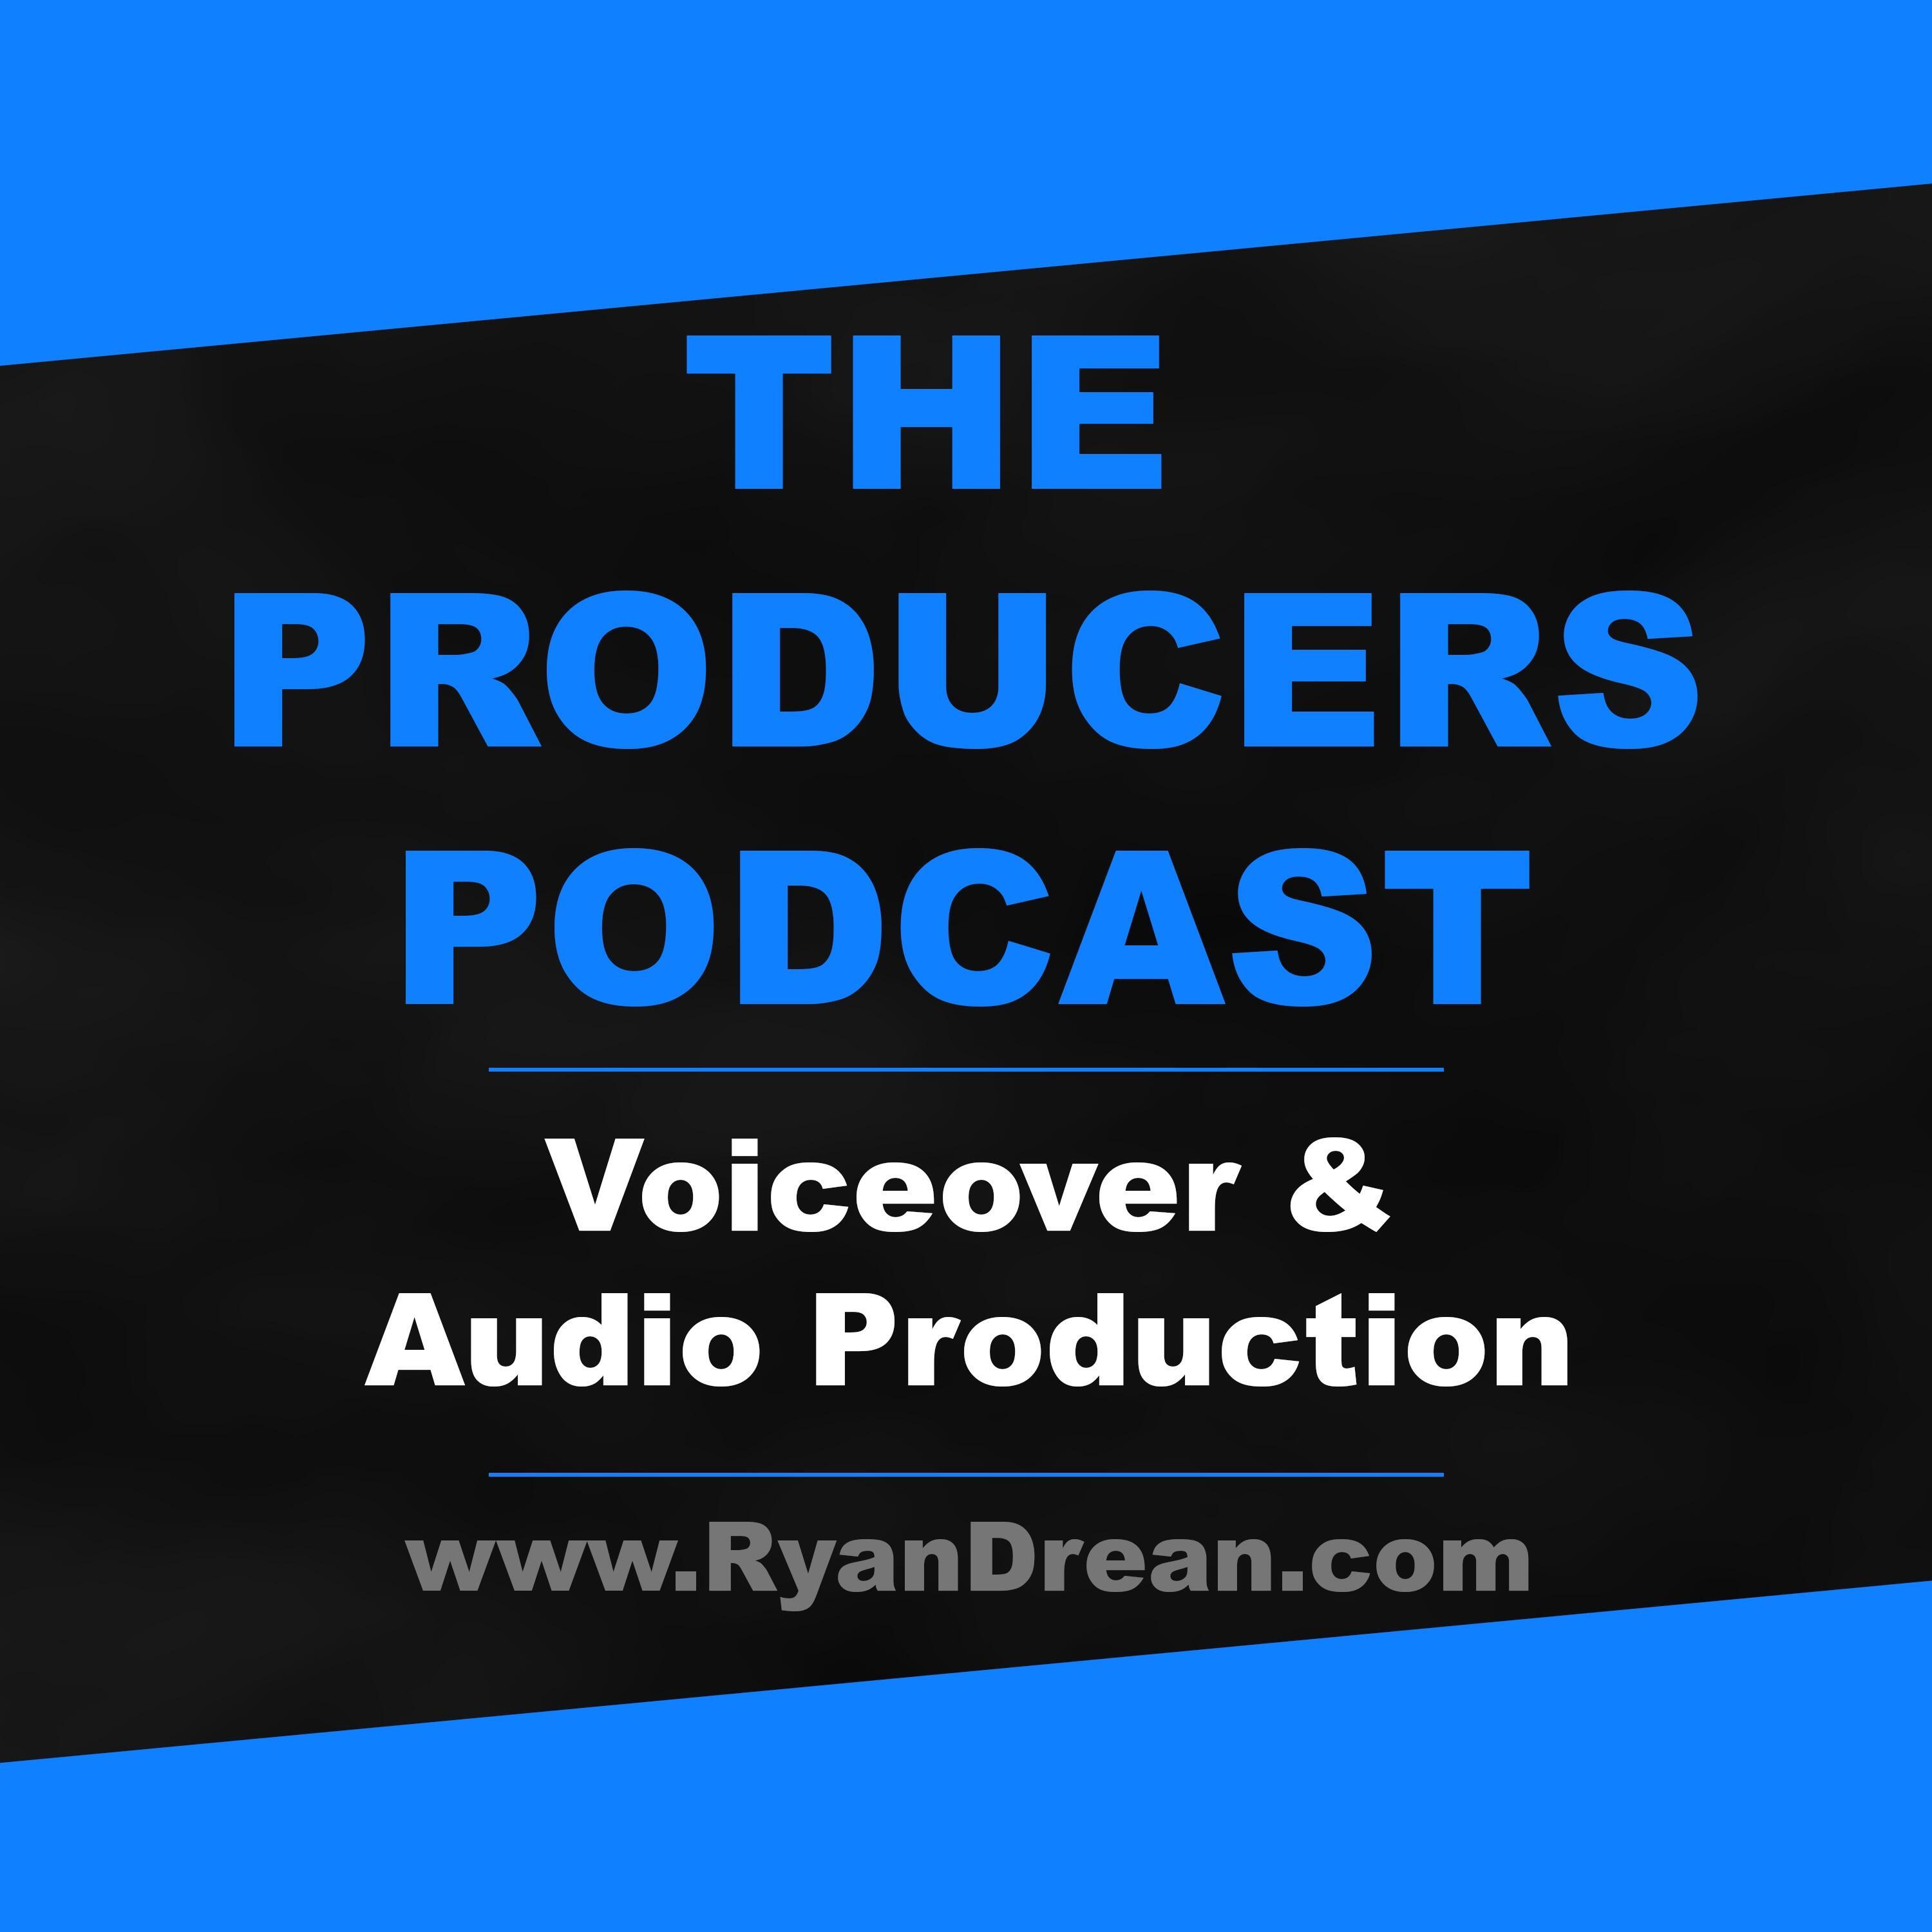 The Producers Podcast - Voiceover and Audio Production